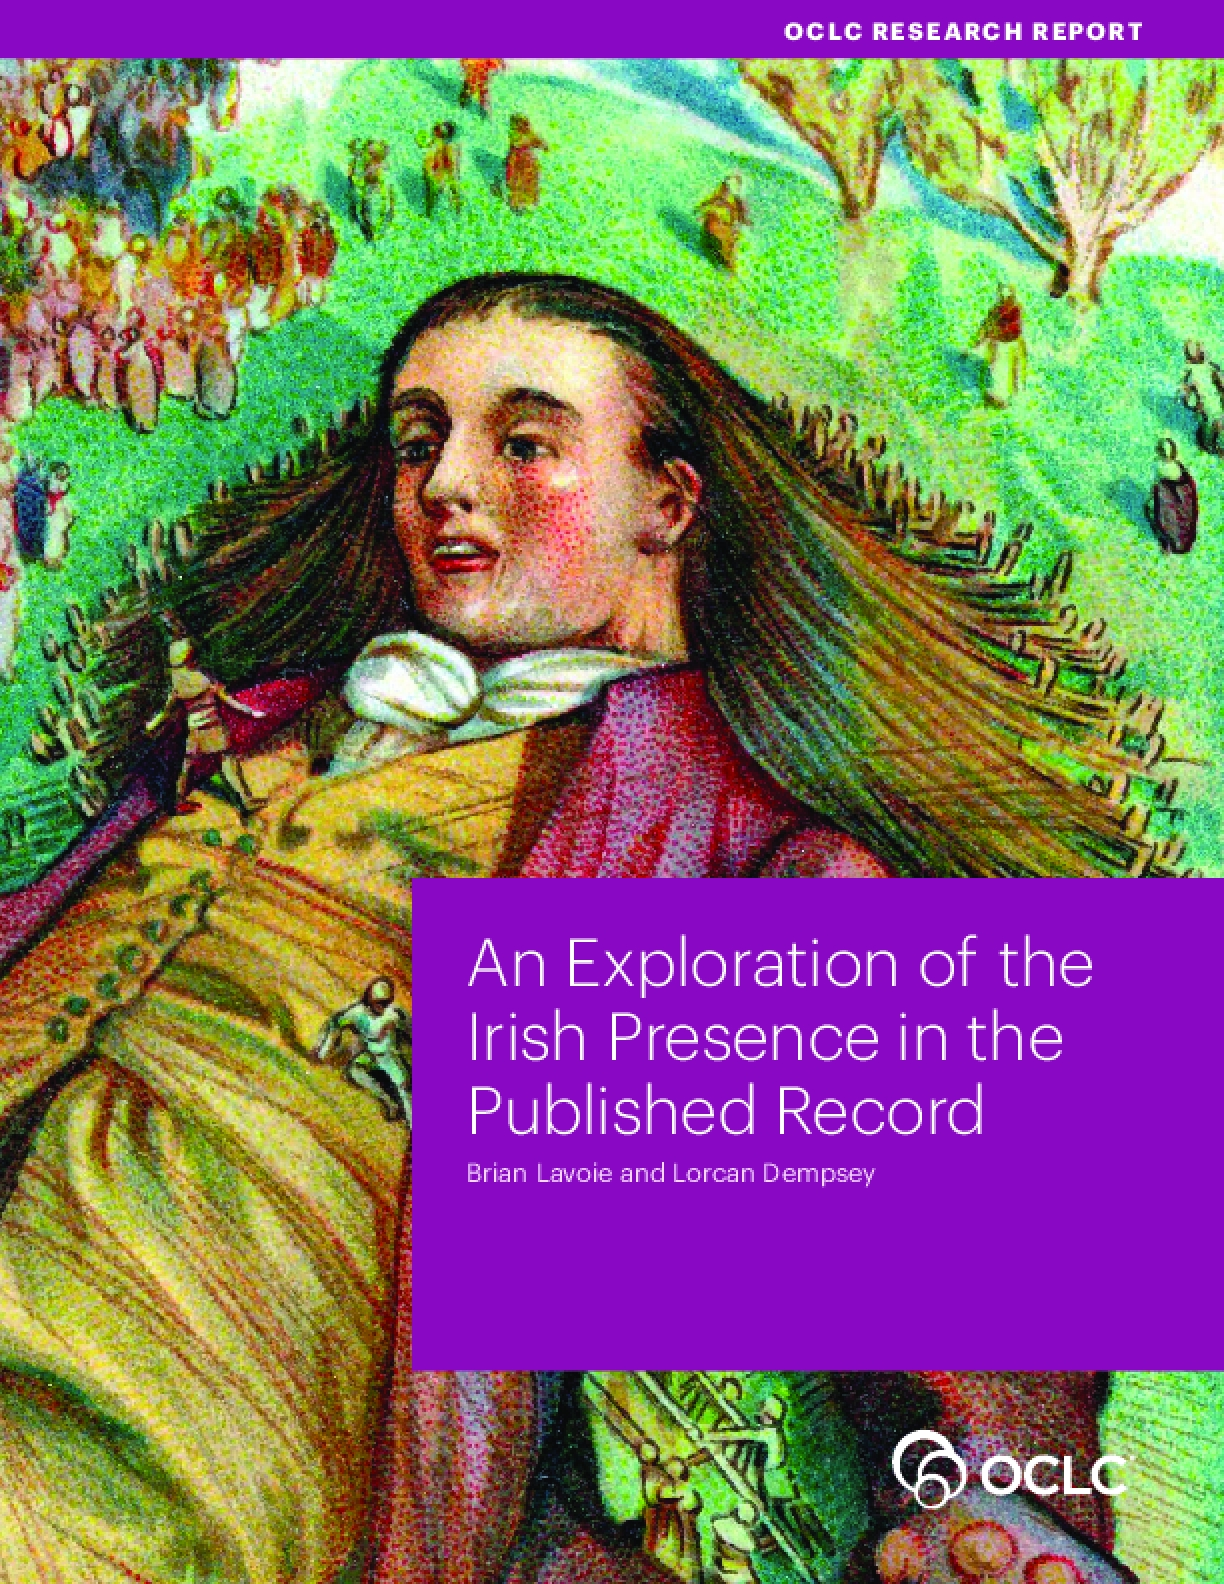 An Exploration of the Irish Presence in the Published Record